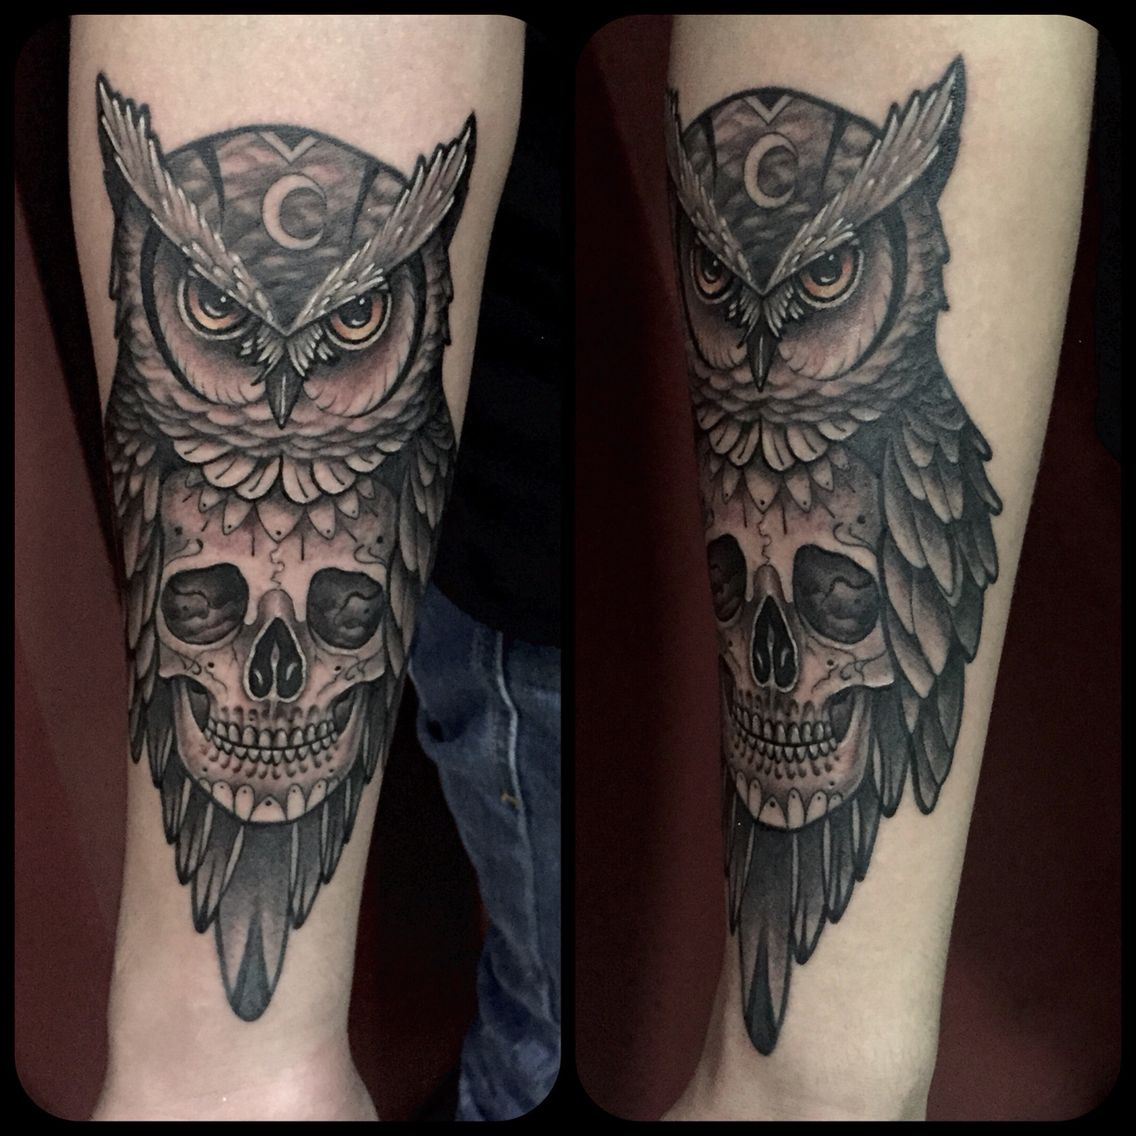 Owl Skull Tattoo By Juan David Castro R Tattoos Tattoos Owl